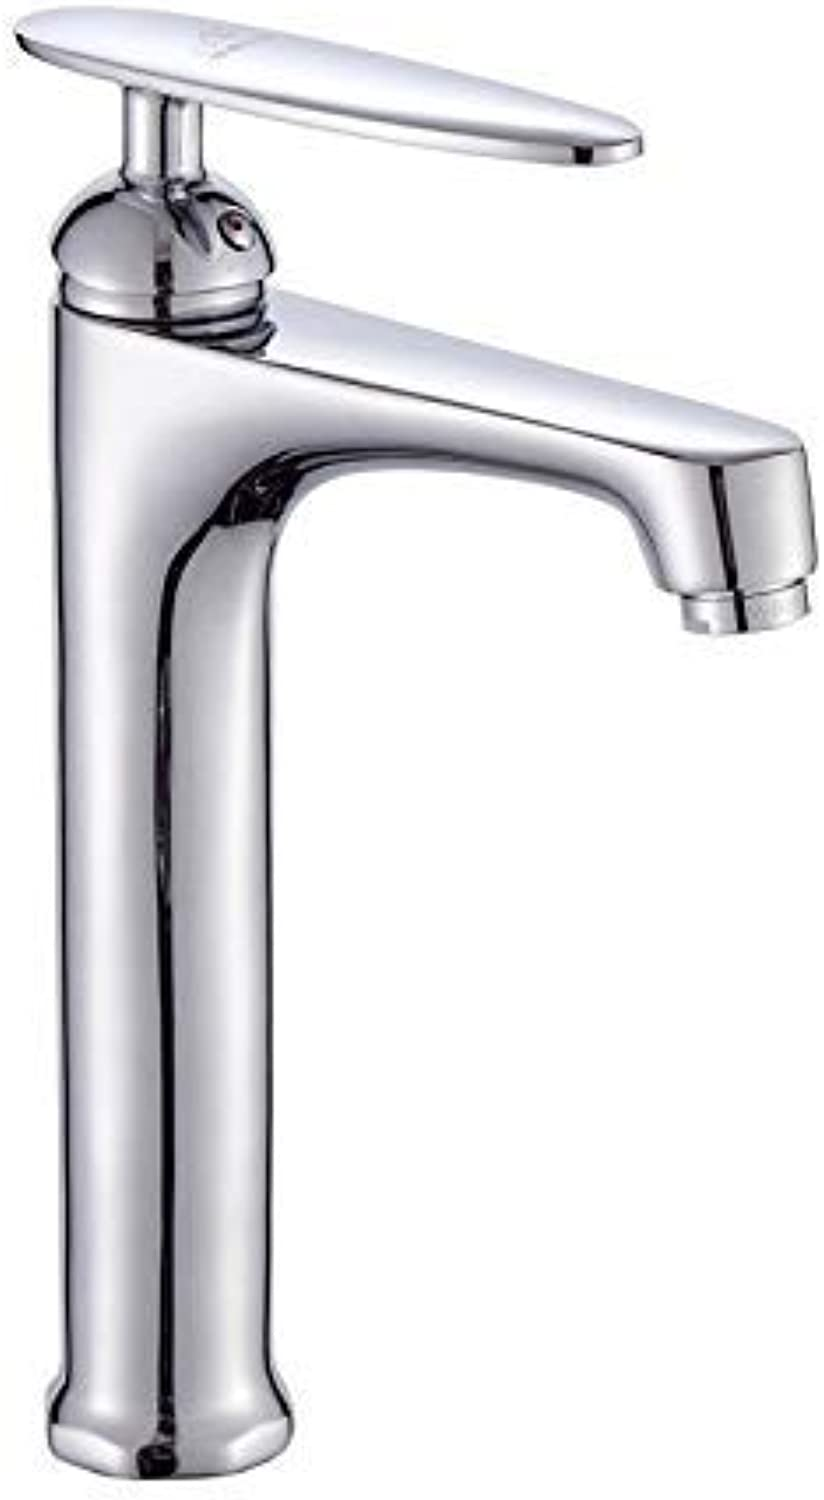 SEBAS HOME Taps Faucet Kitchen Dish Basin Basin Height Hot And Cold Water Mixer Tap Copper Single Hole Bathroom Above Counter Basin Faucet